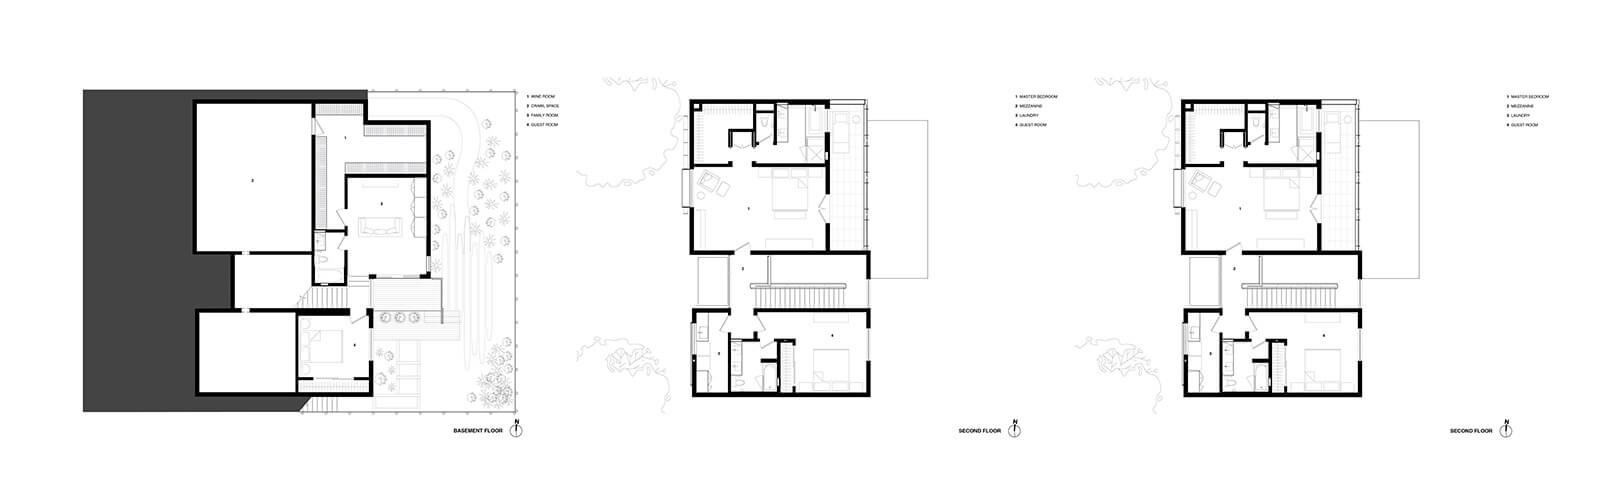 studio vara residential noe drawing plans